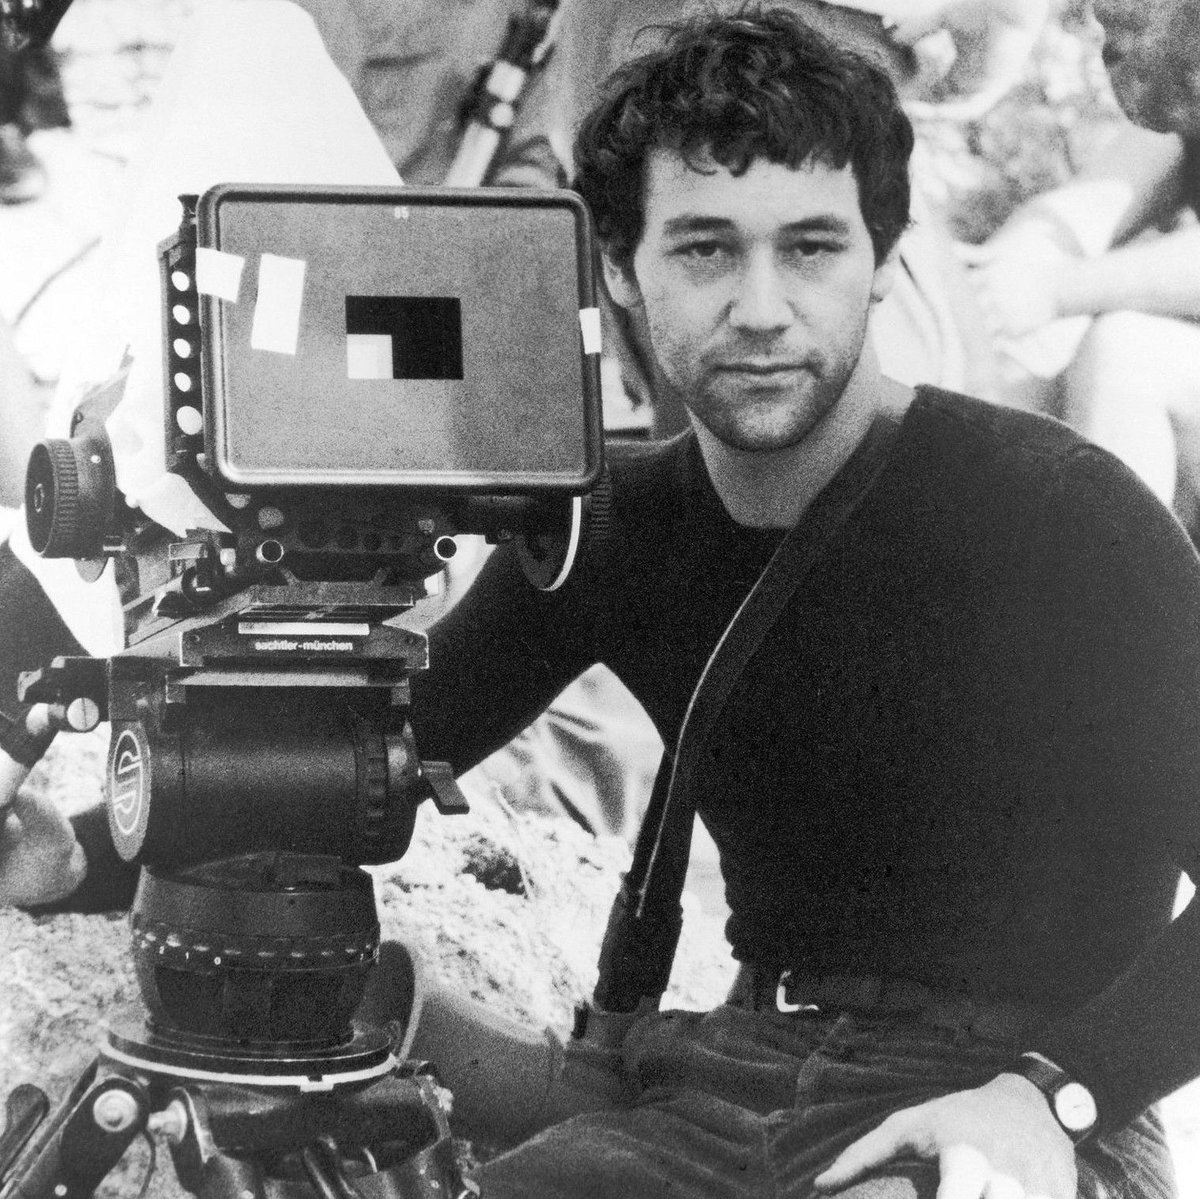 Happy birthday, Sam Raimi!